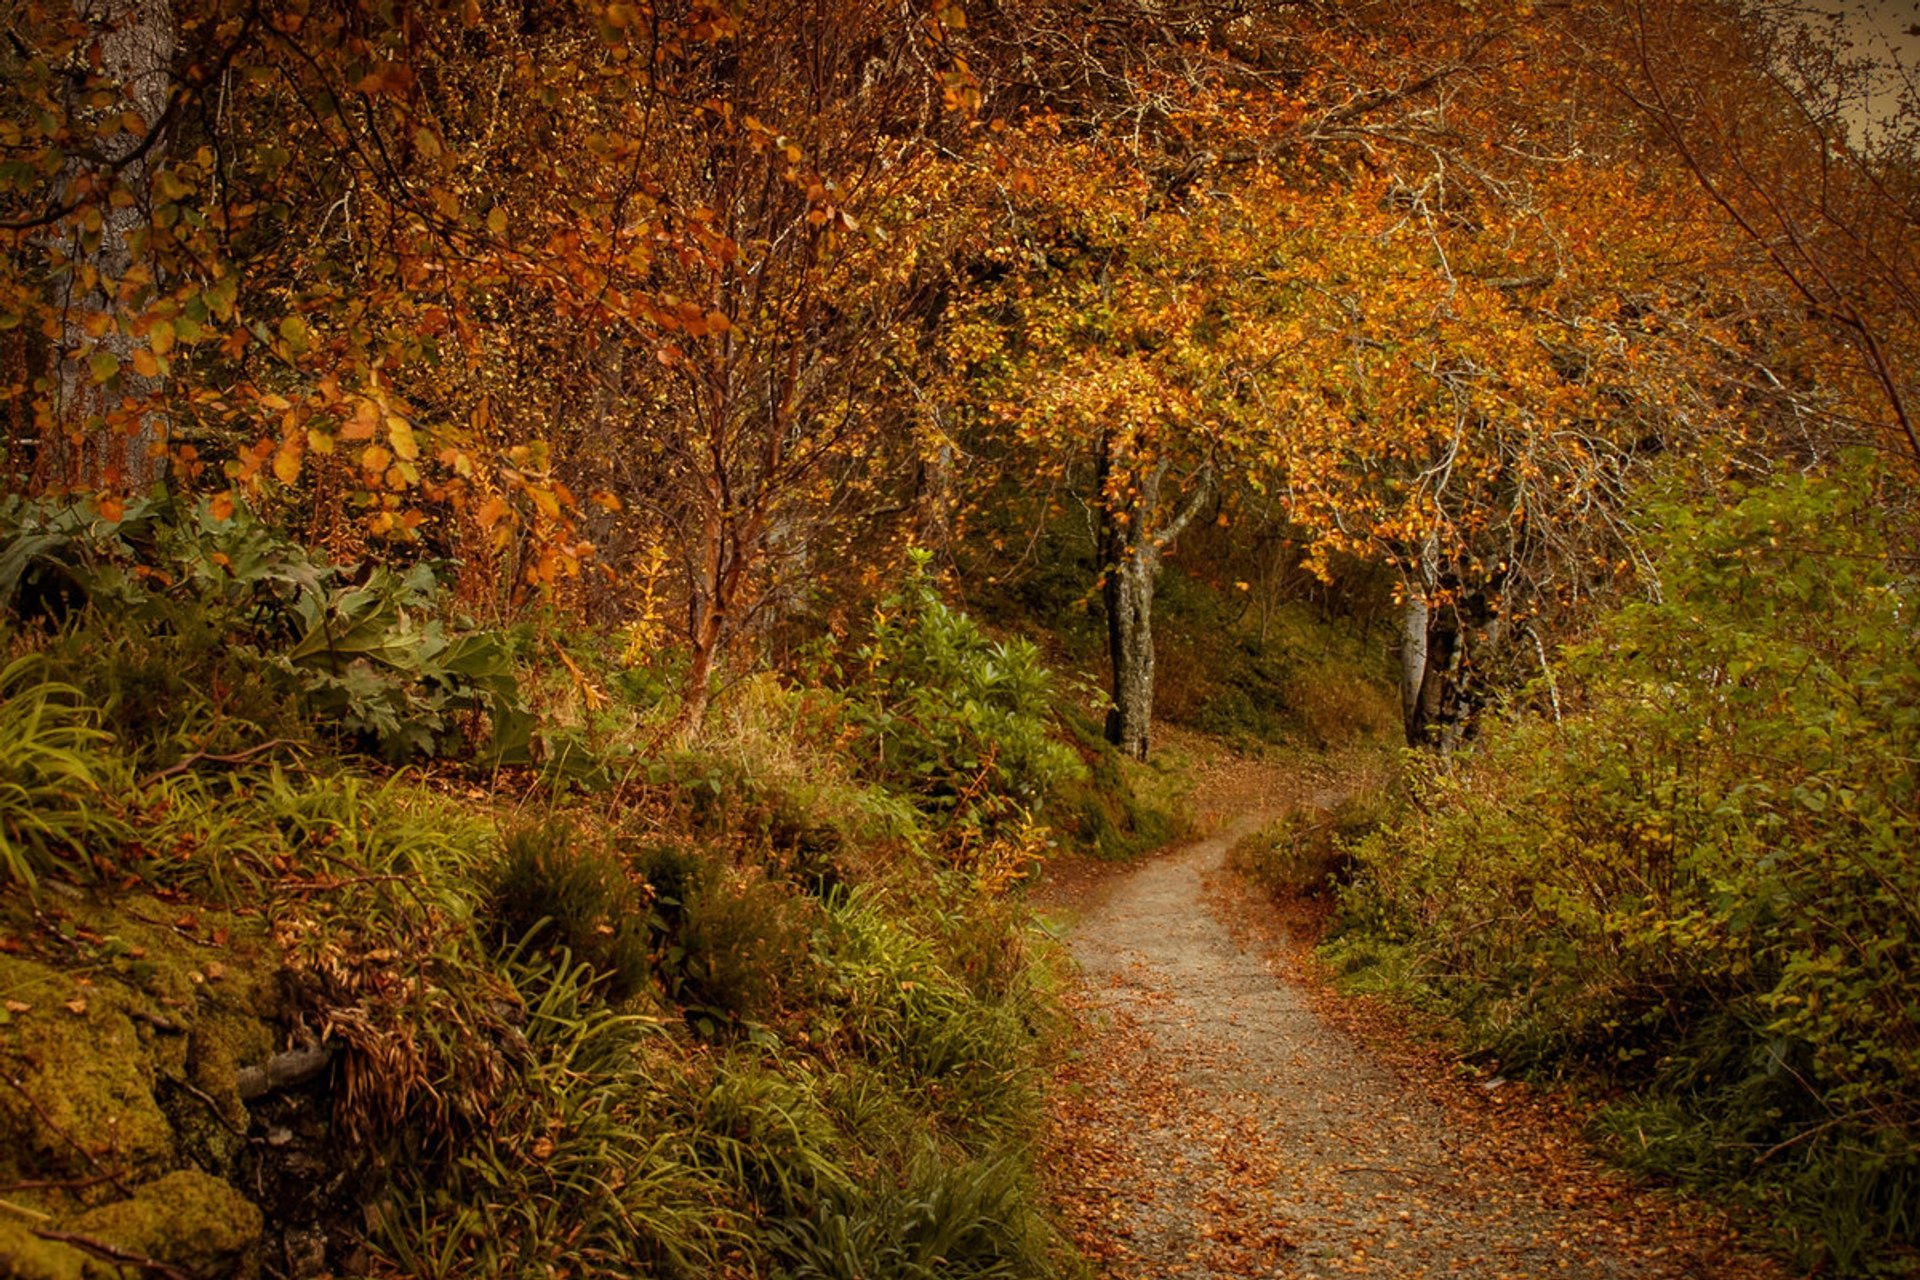 Autumn Foliage in Scotland - Best Season 2020